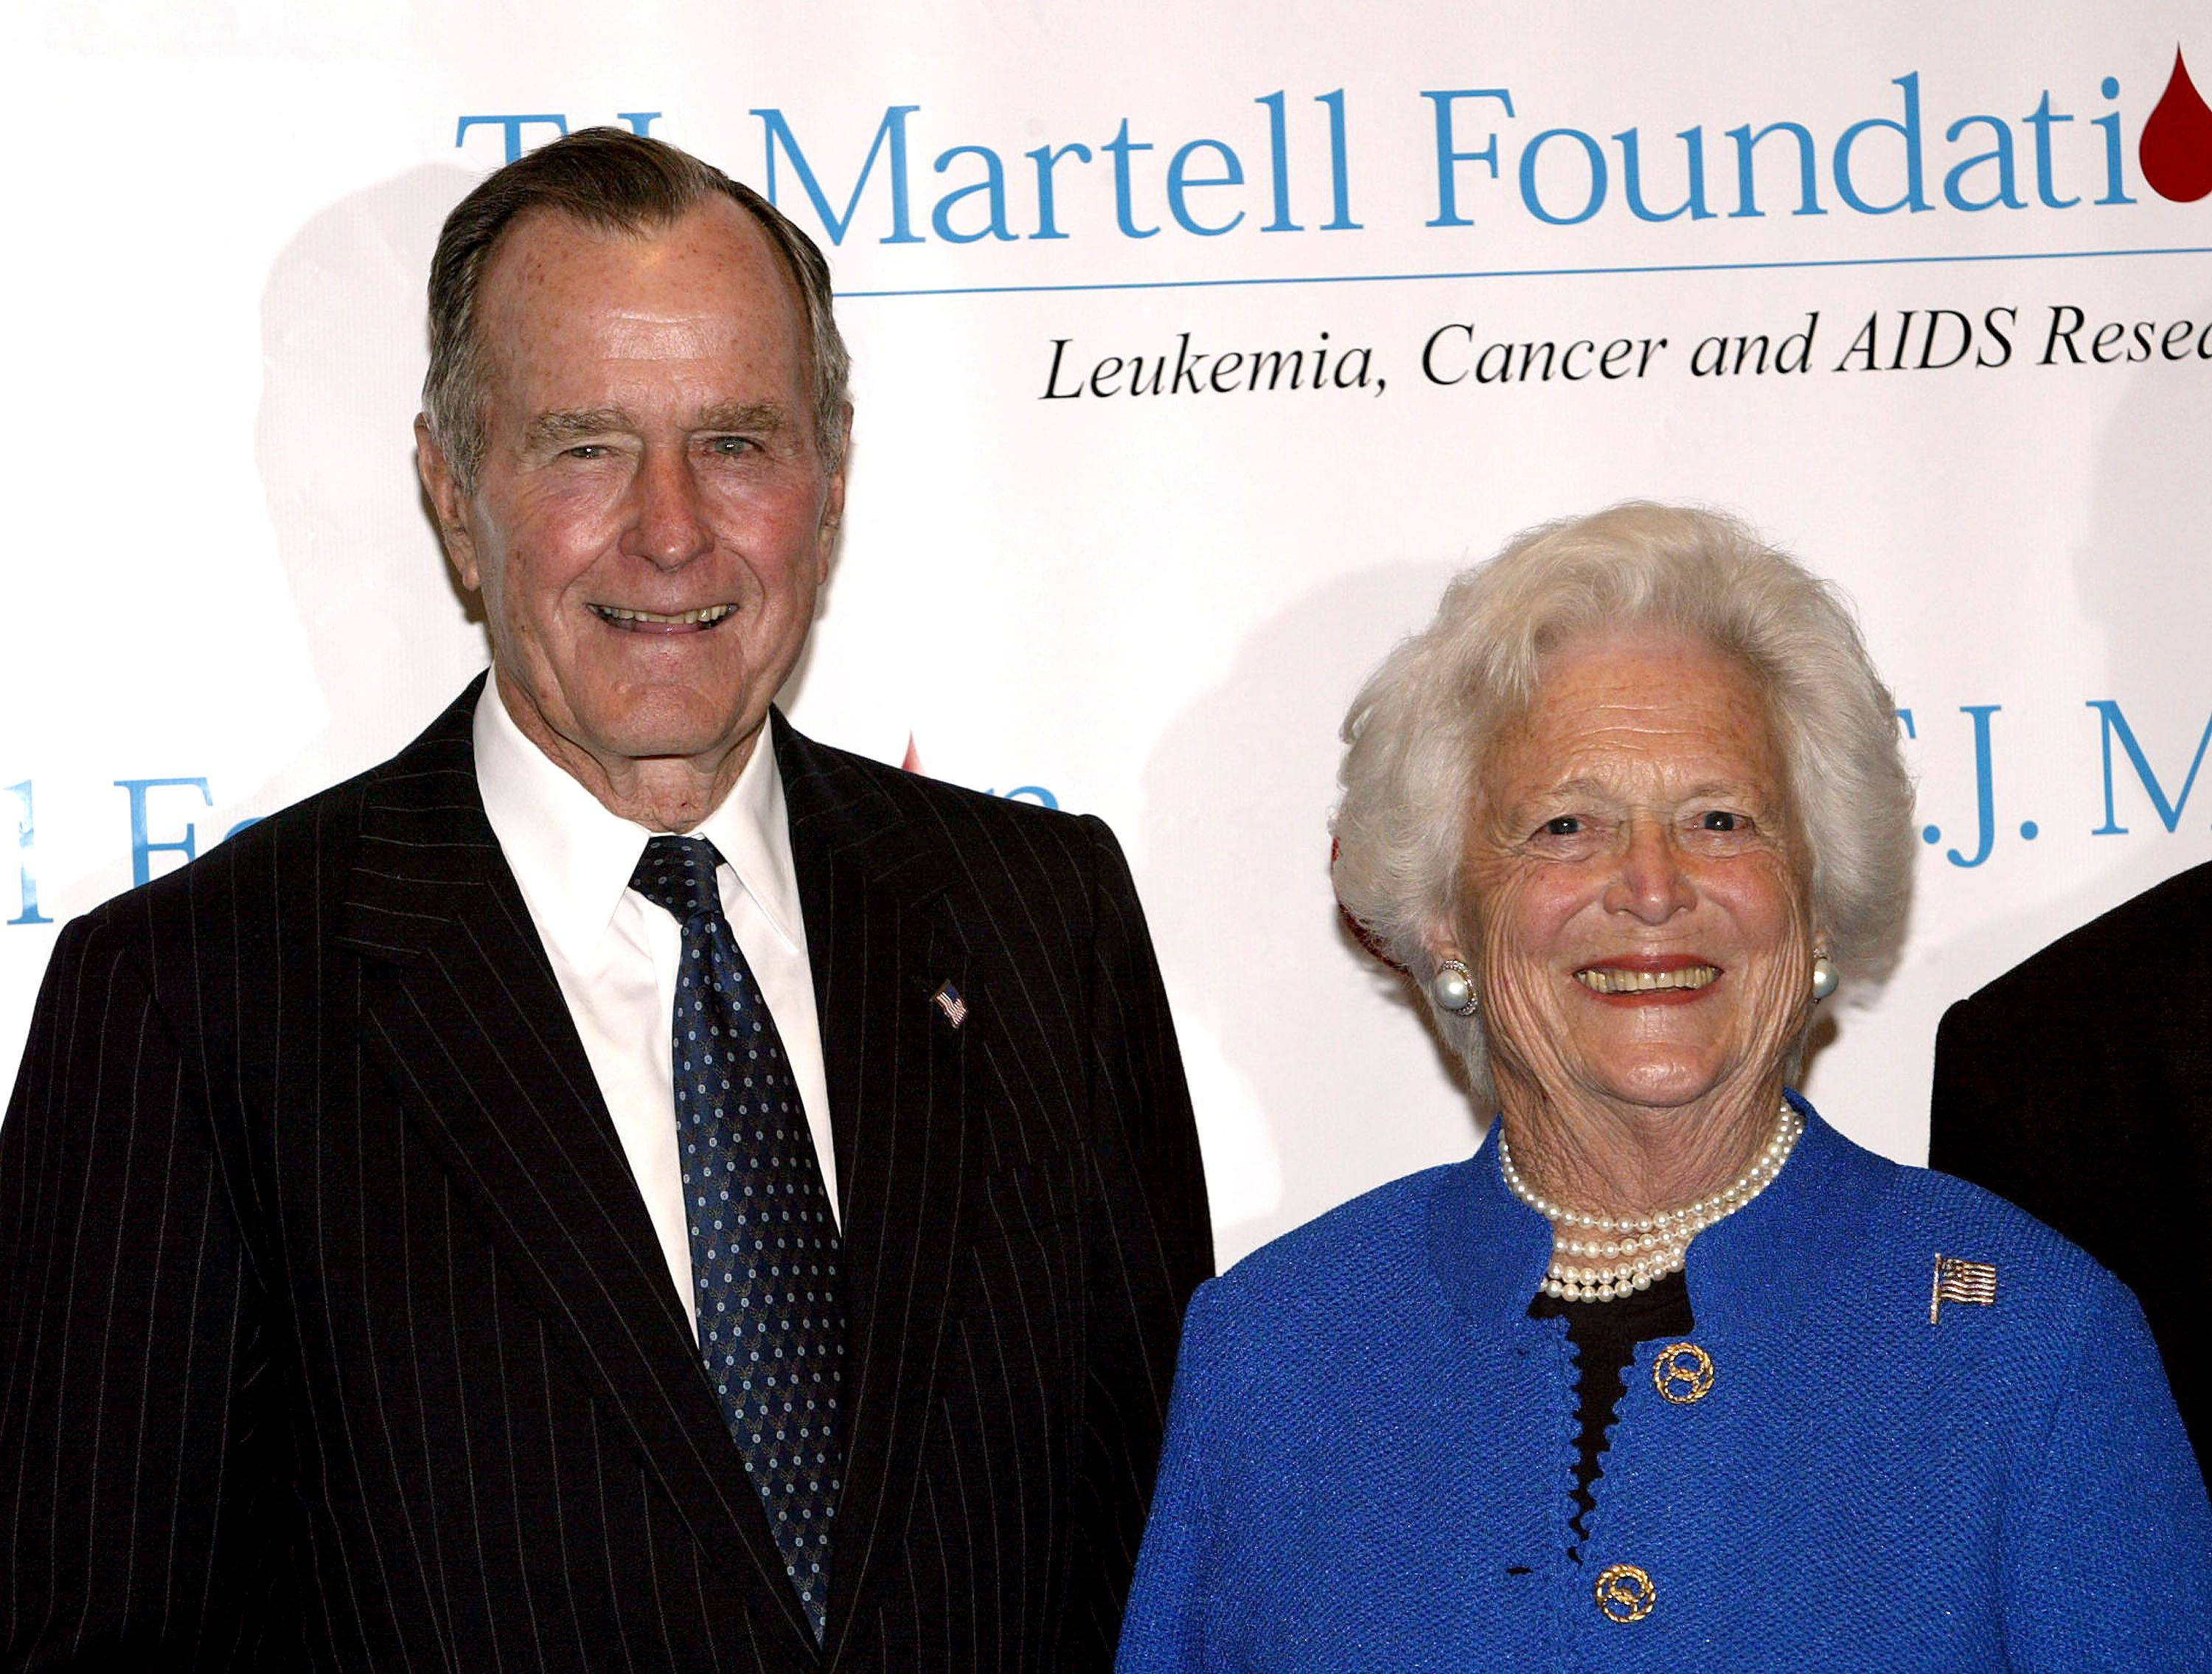 Former President George H. W. Bush and his wife Barbara at the 29th Annual T.J. Martell Foundation Awards Gala at the New York Hilton May 27, 2004 | Photo: Getty Images